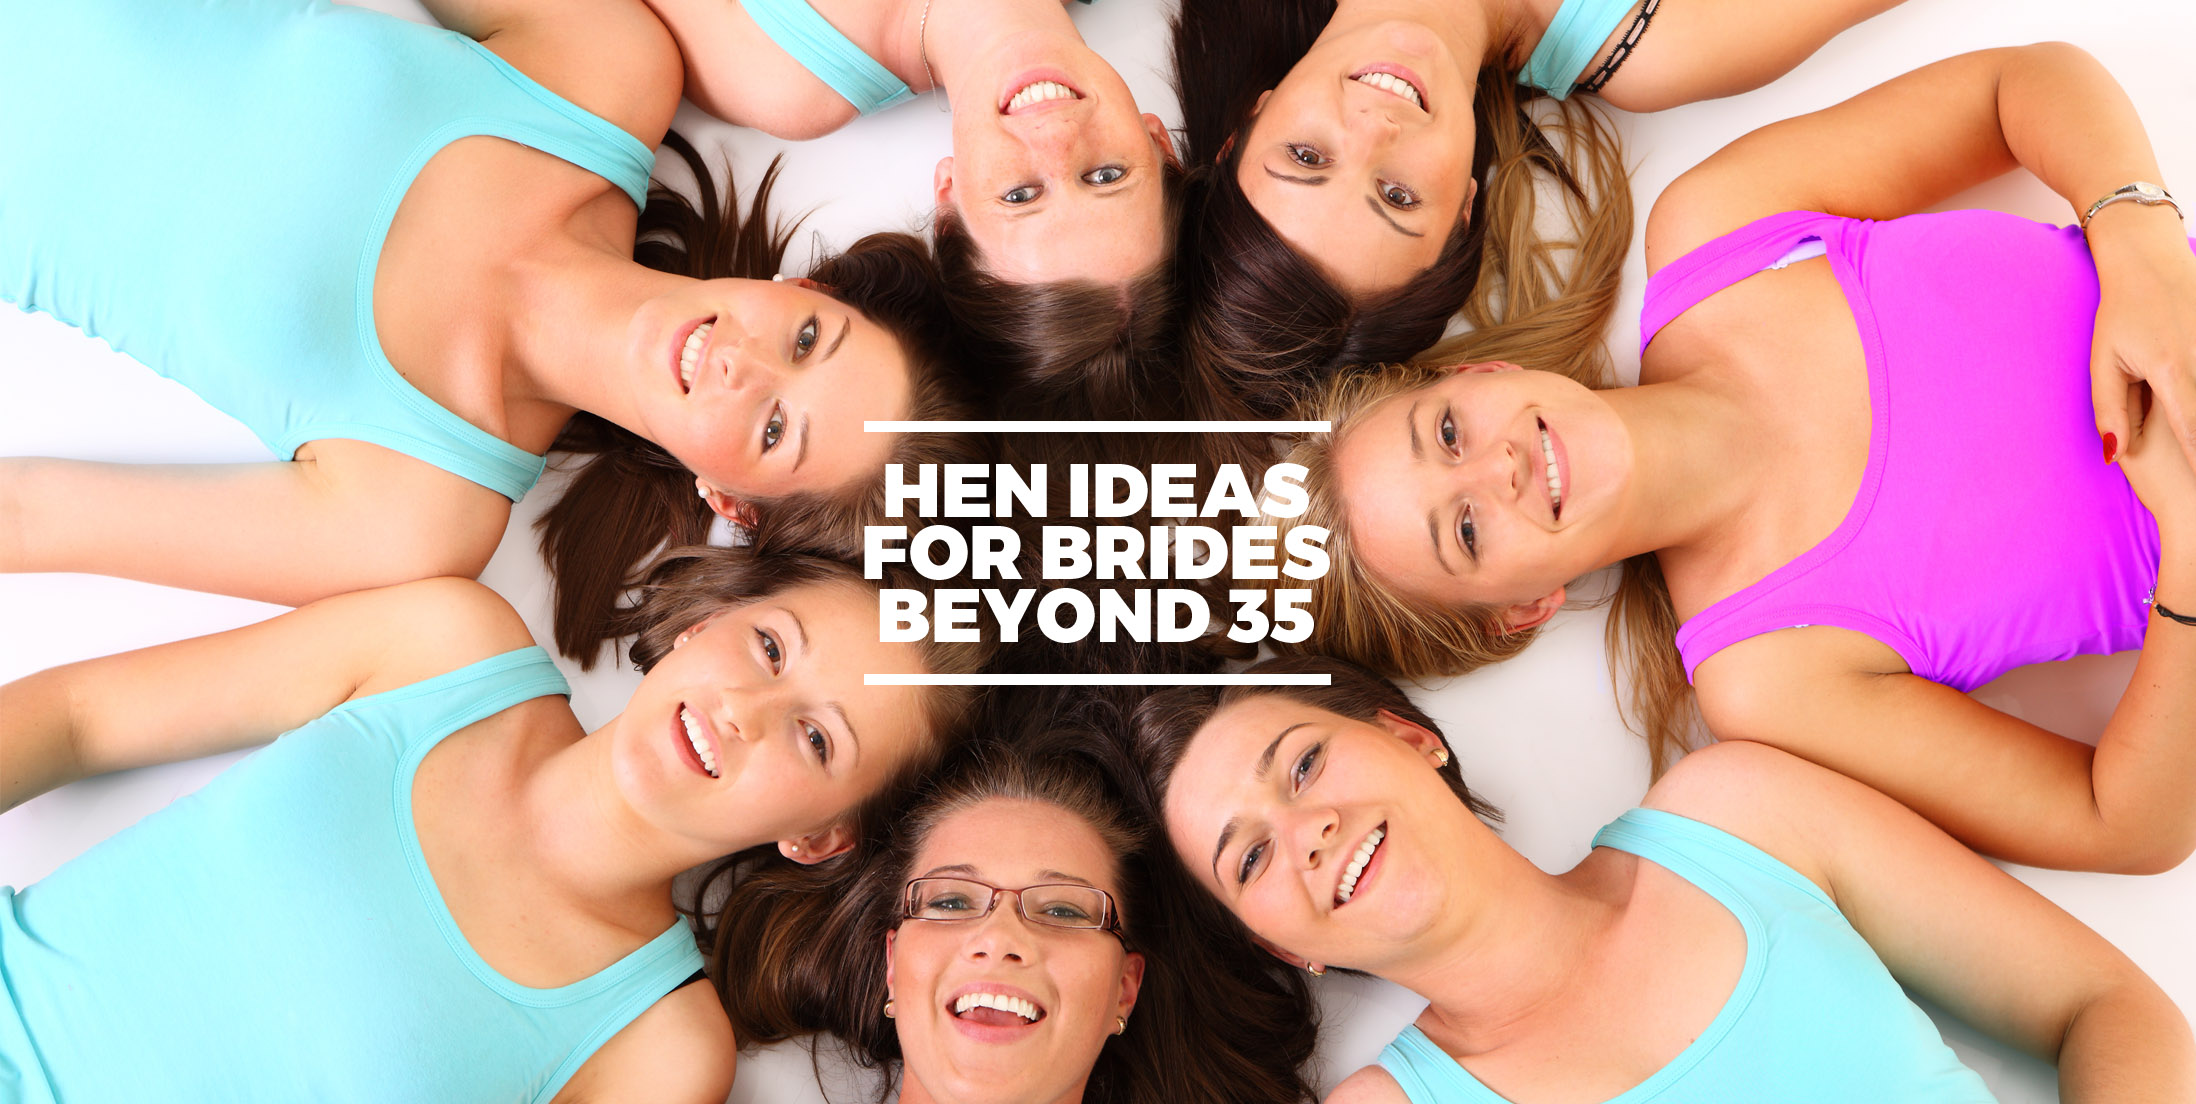 Hen Party Ideas for Brides Beyond 35